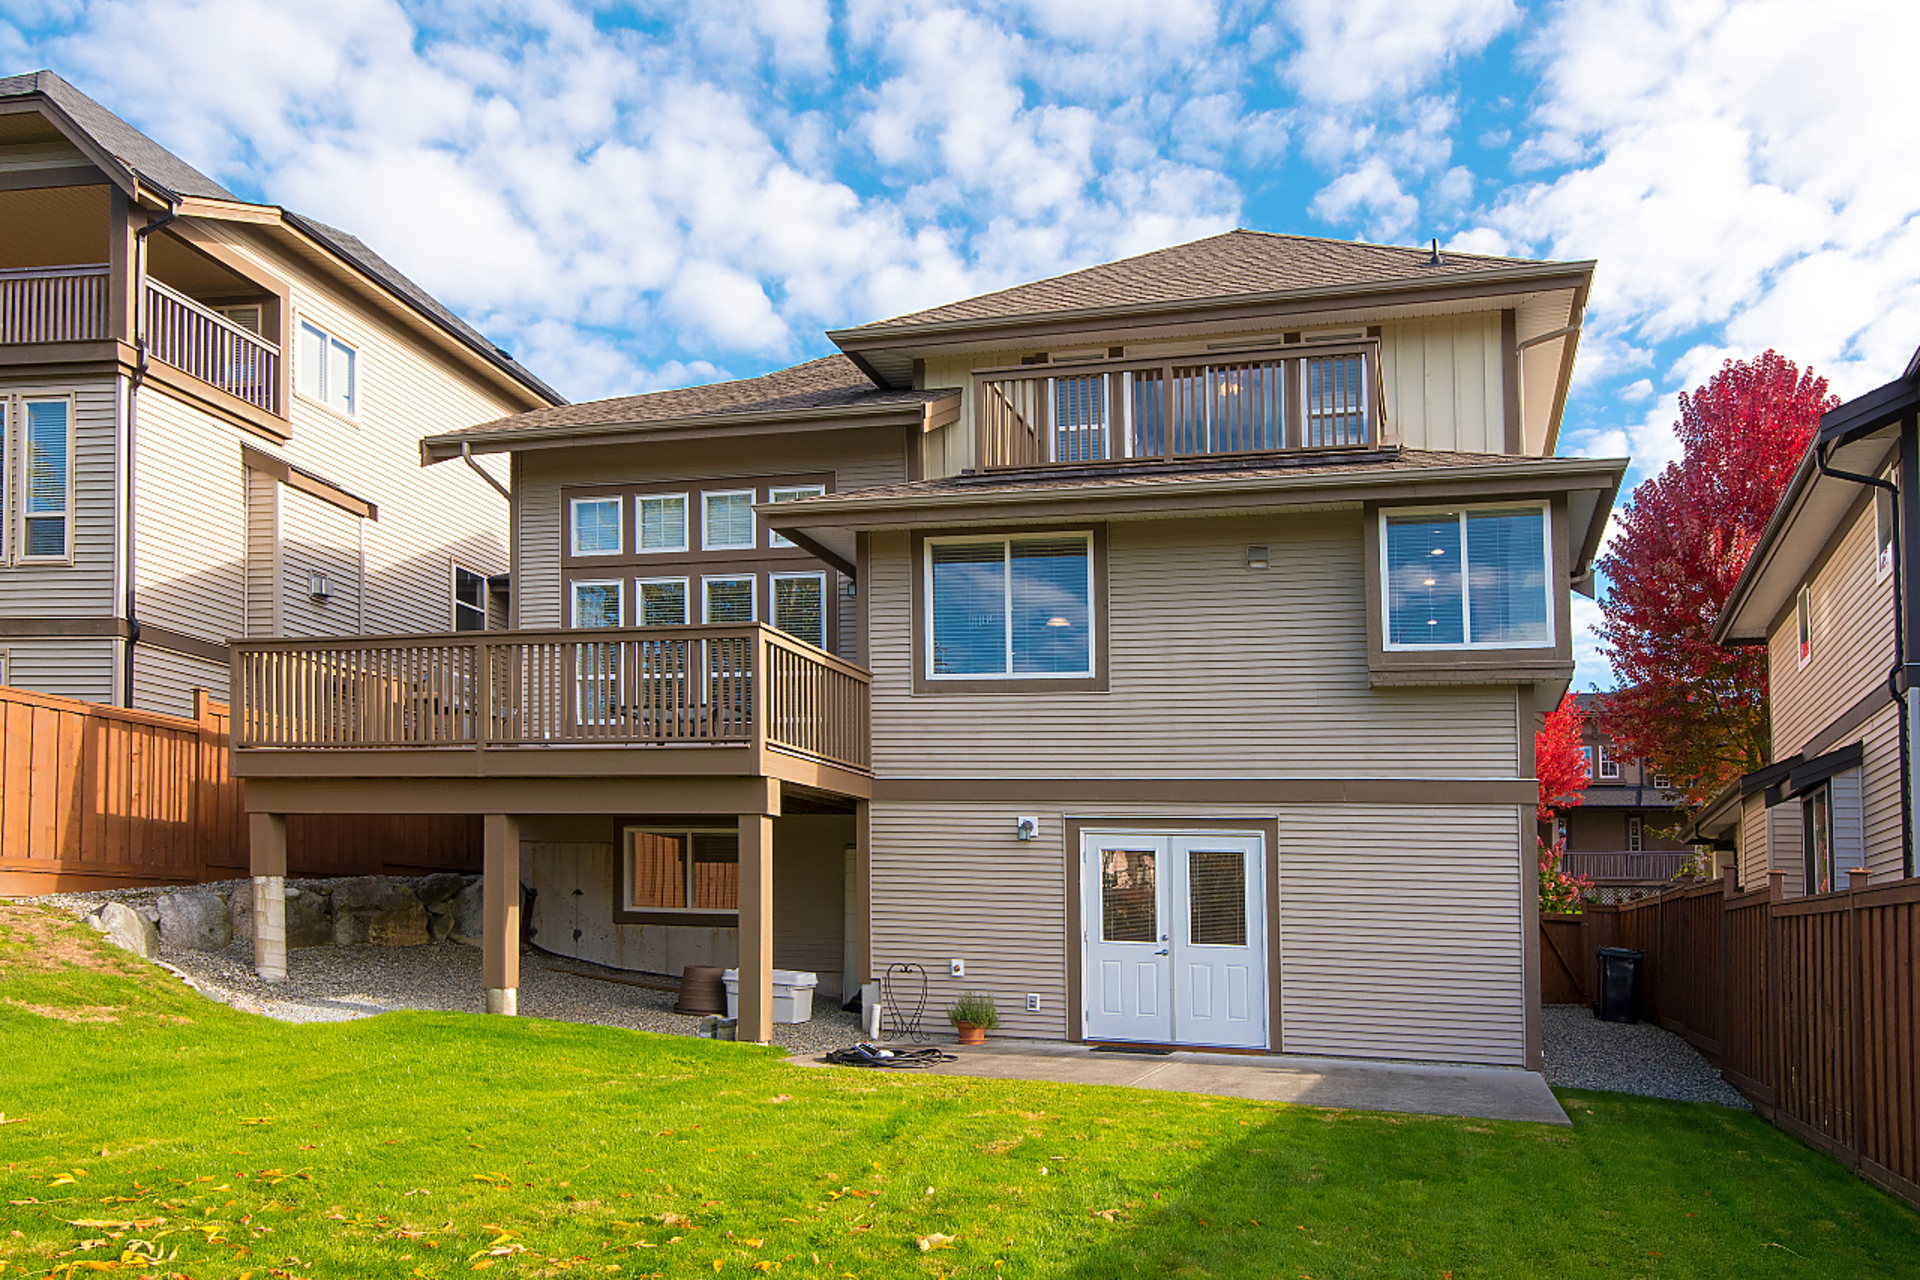 047 at 43 Maple Drive, Heritage Woods PM, Port Moody